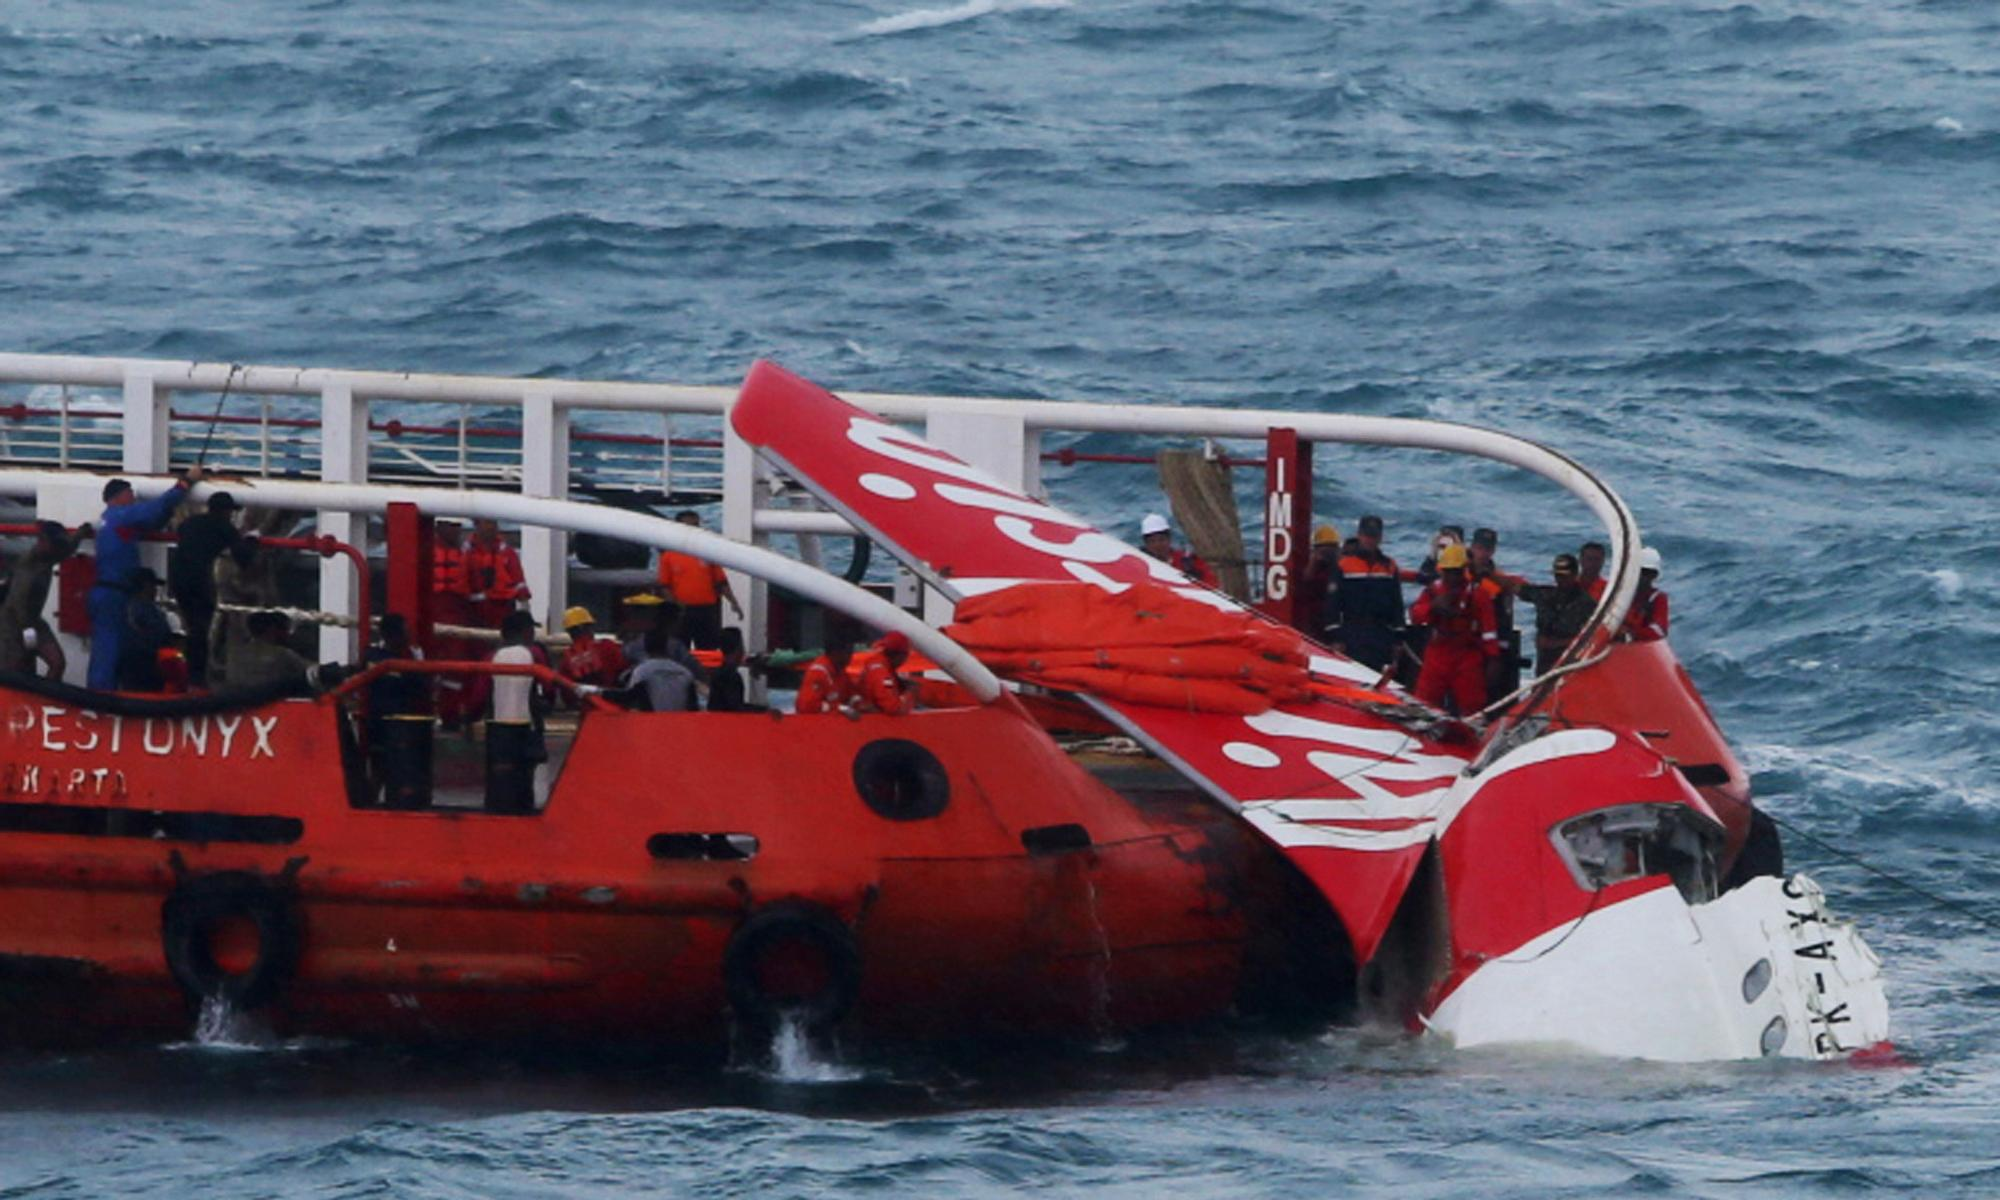 AirAsia co-pilot was in charge of plane when it crashed, investigators reveal